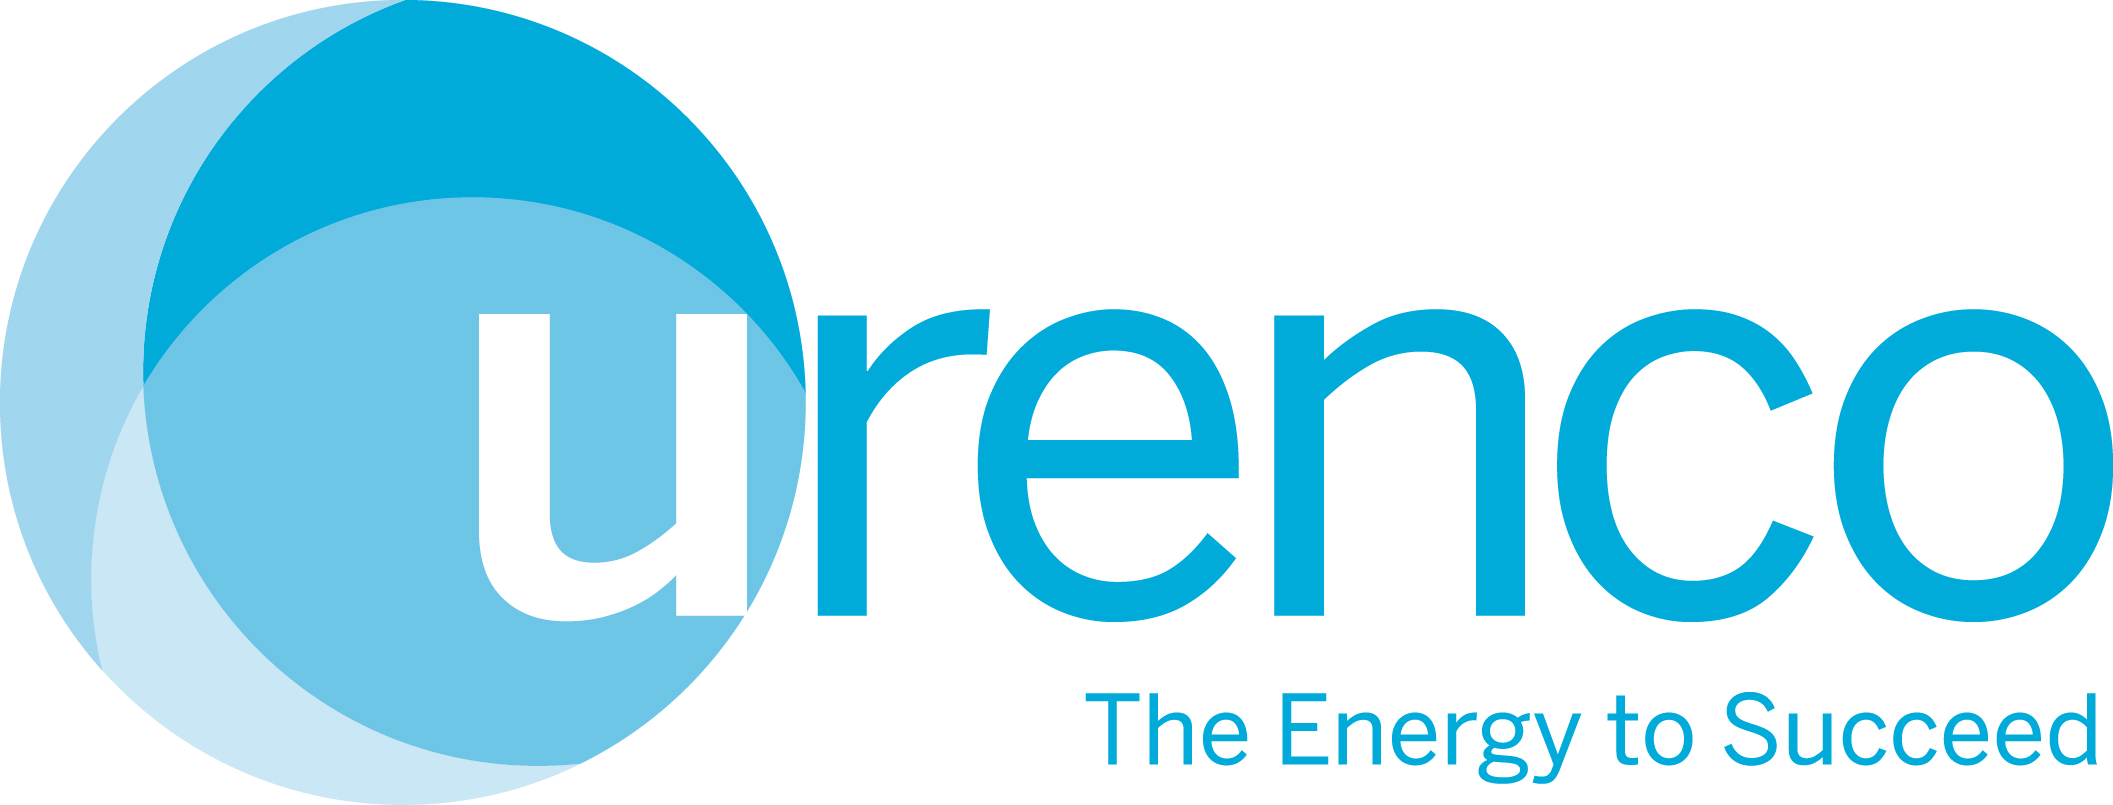 Urenco-Corporate-logo.jpg